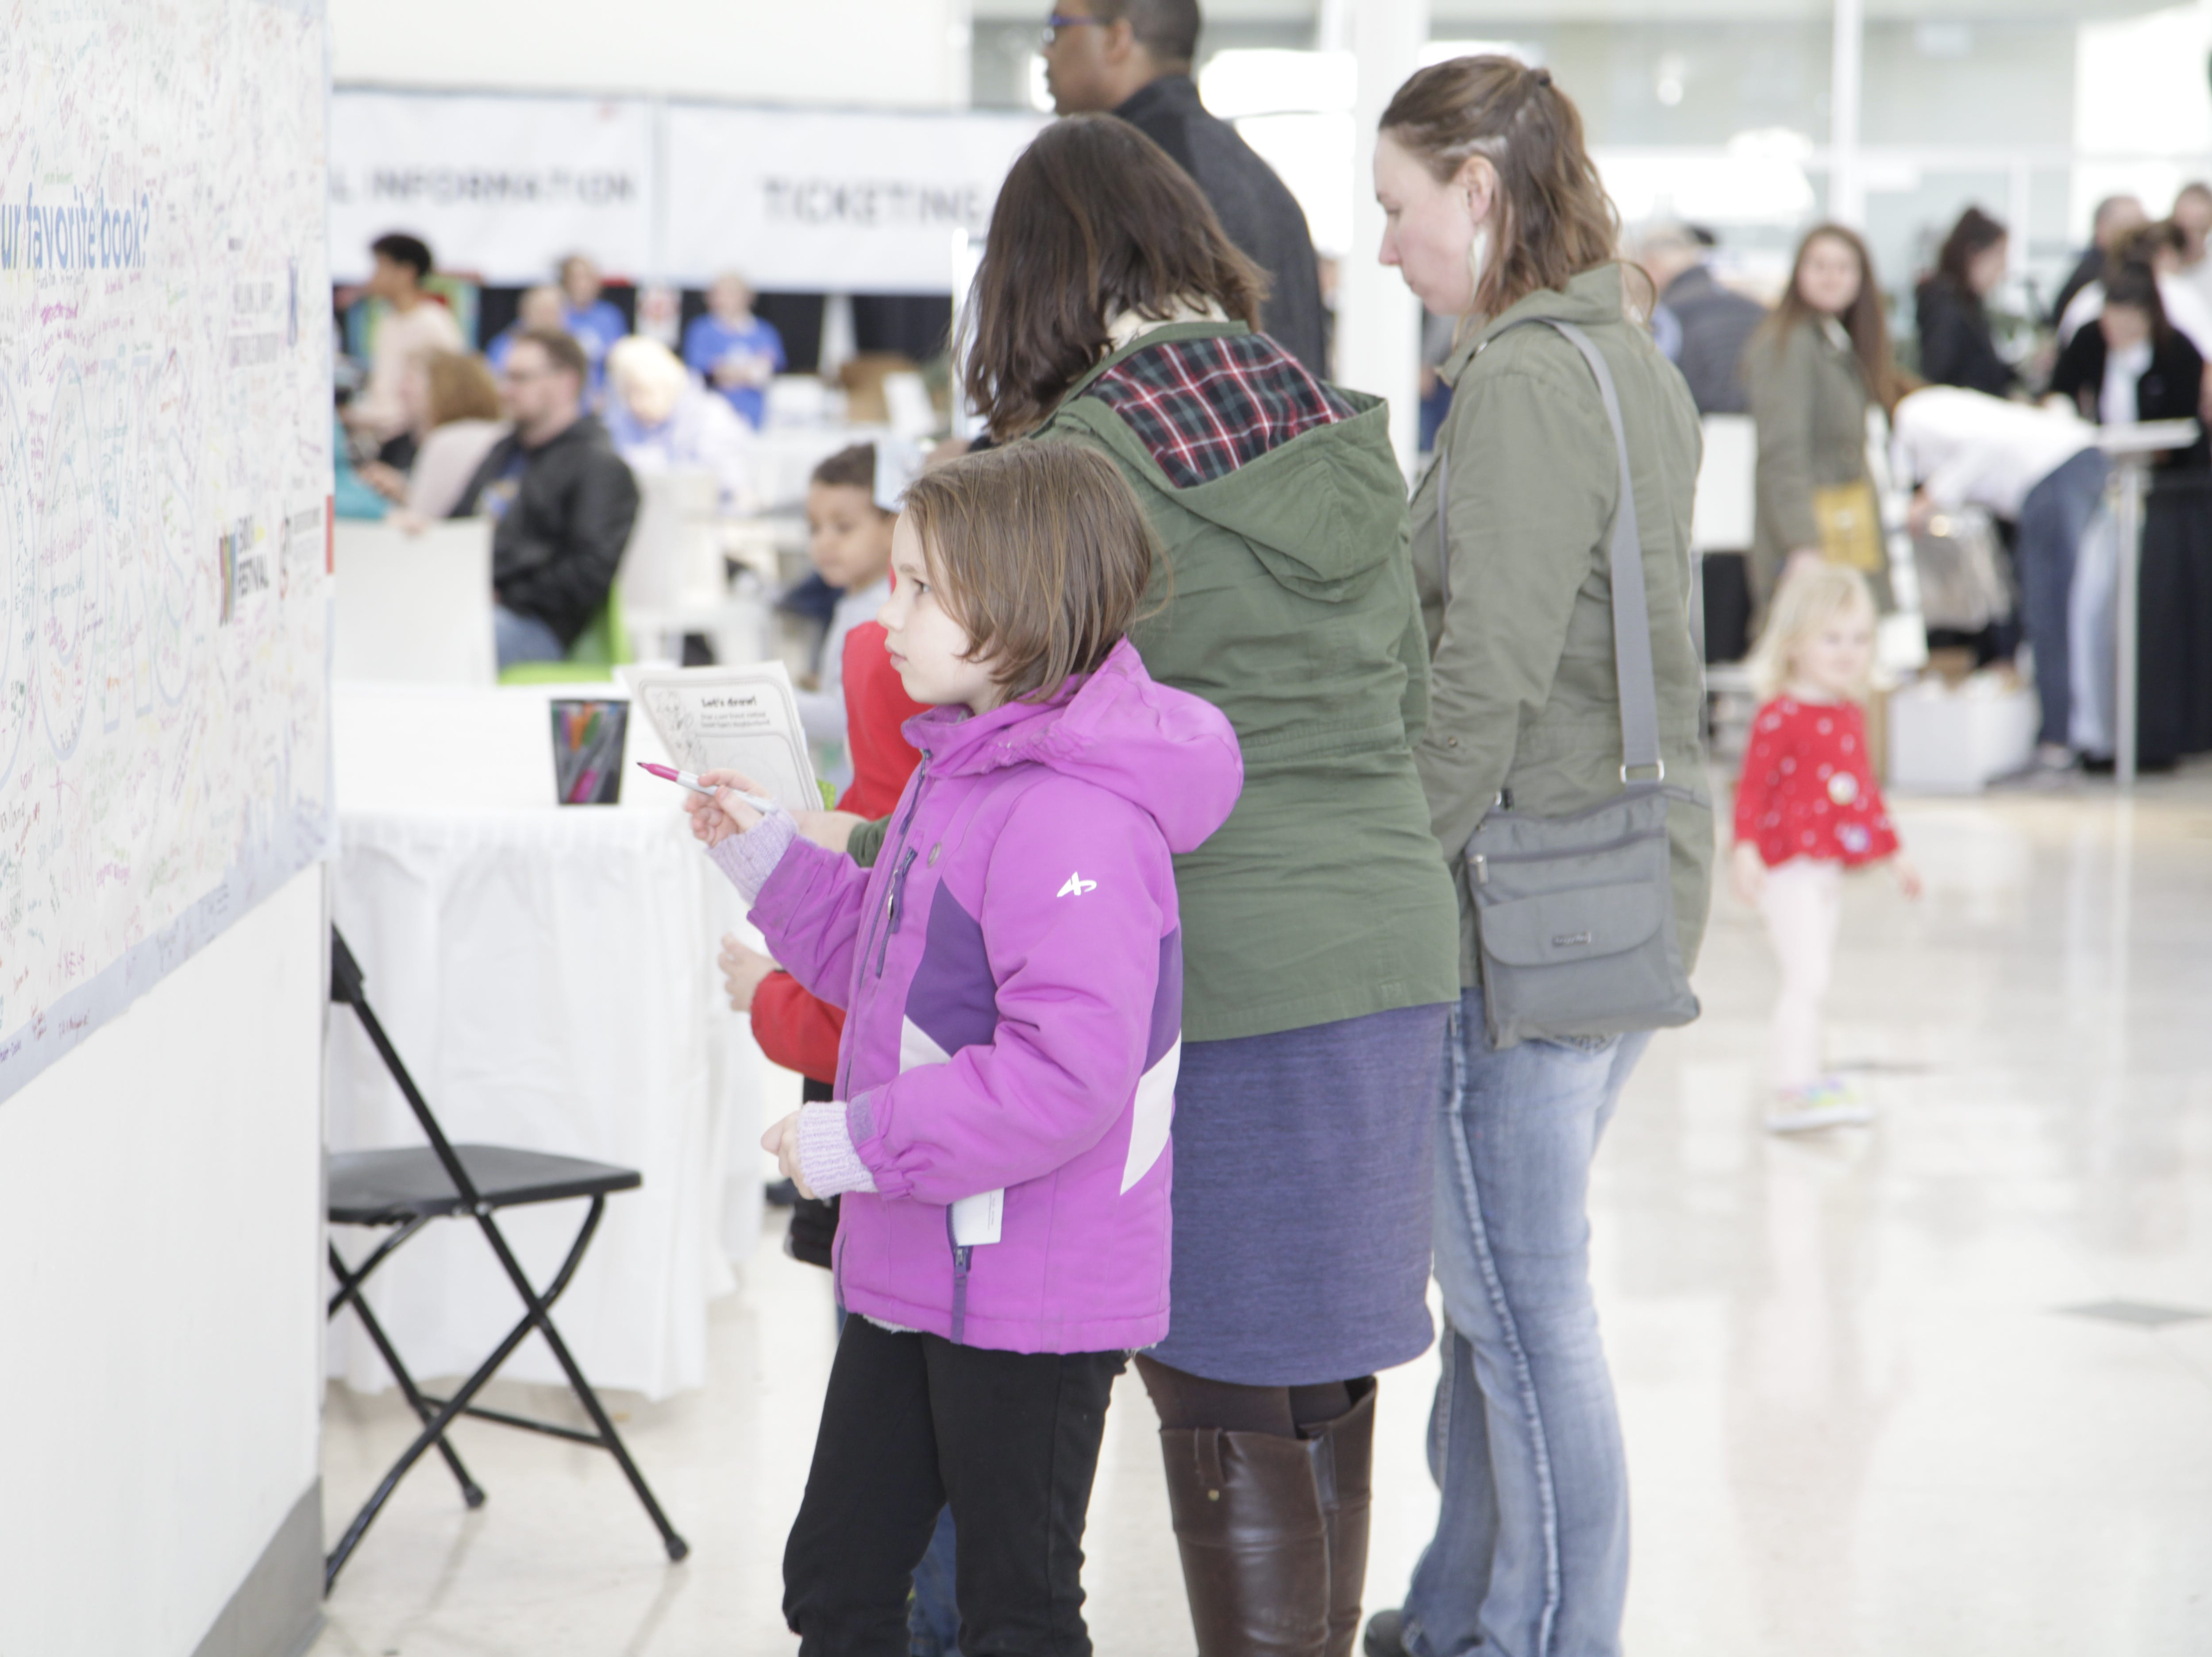 Ella Harden, 7, prepares to write her favorite book on a display at the DSM Book Festival, which attracted authors, speakers and book lovers to downtown Des Moines on Saturday, March 30, 2019.